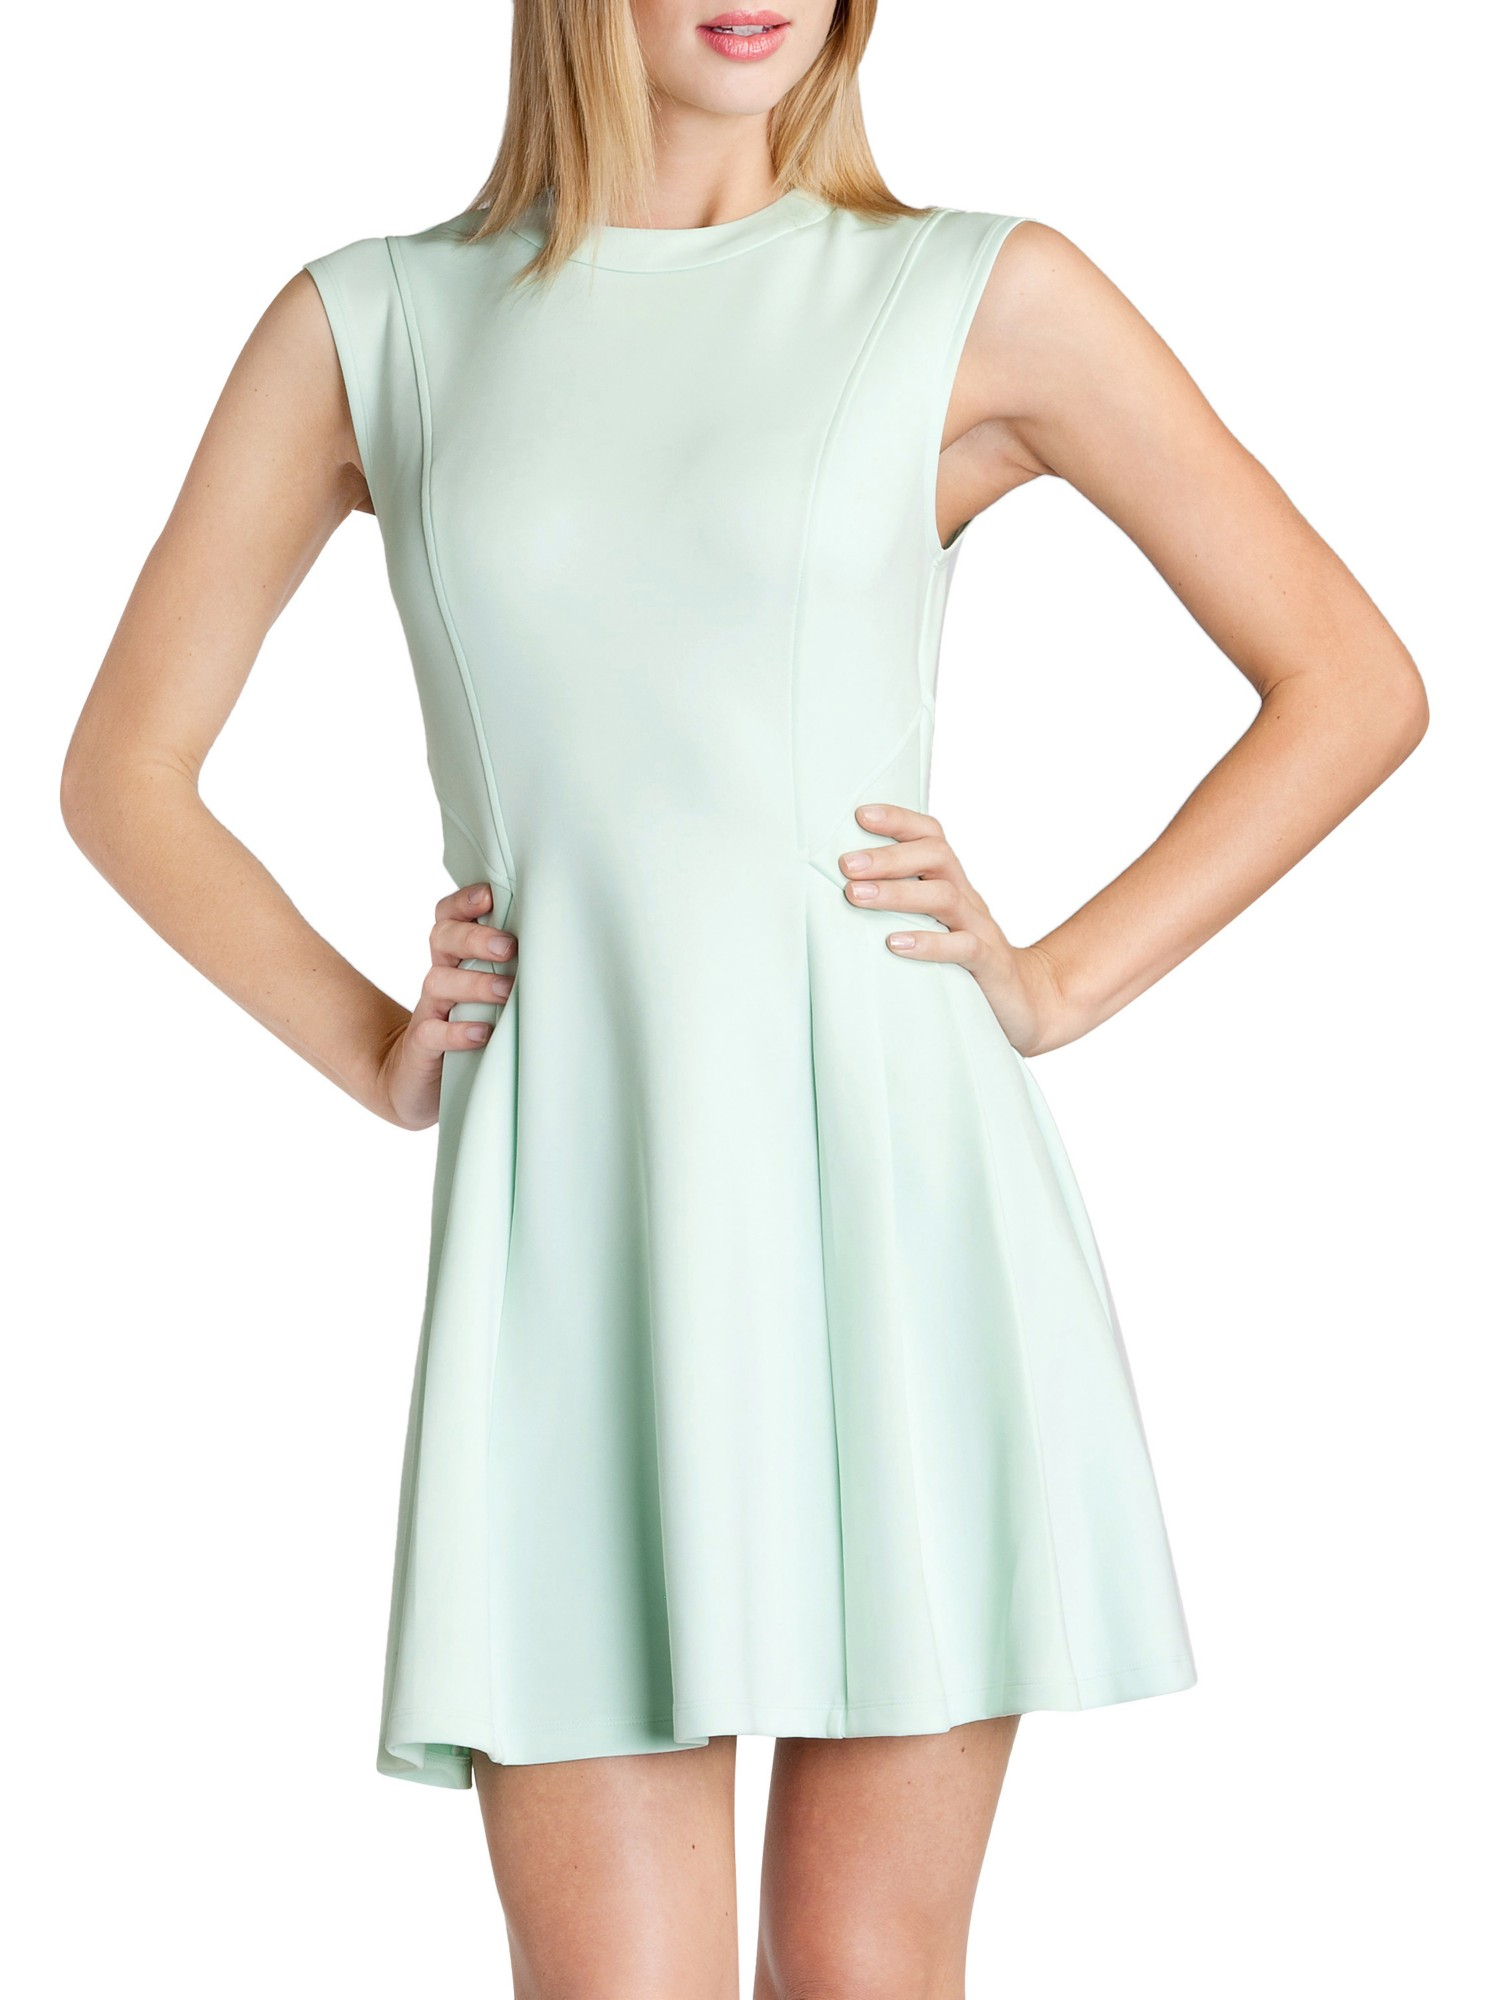 4080ef219d9e07 Ted Baker Nistee Side Pleat Skater Dress in Green - Lyst